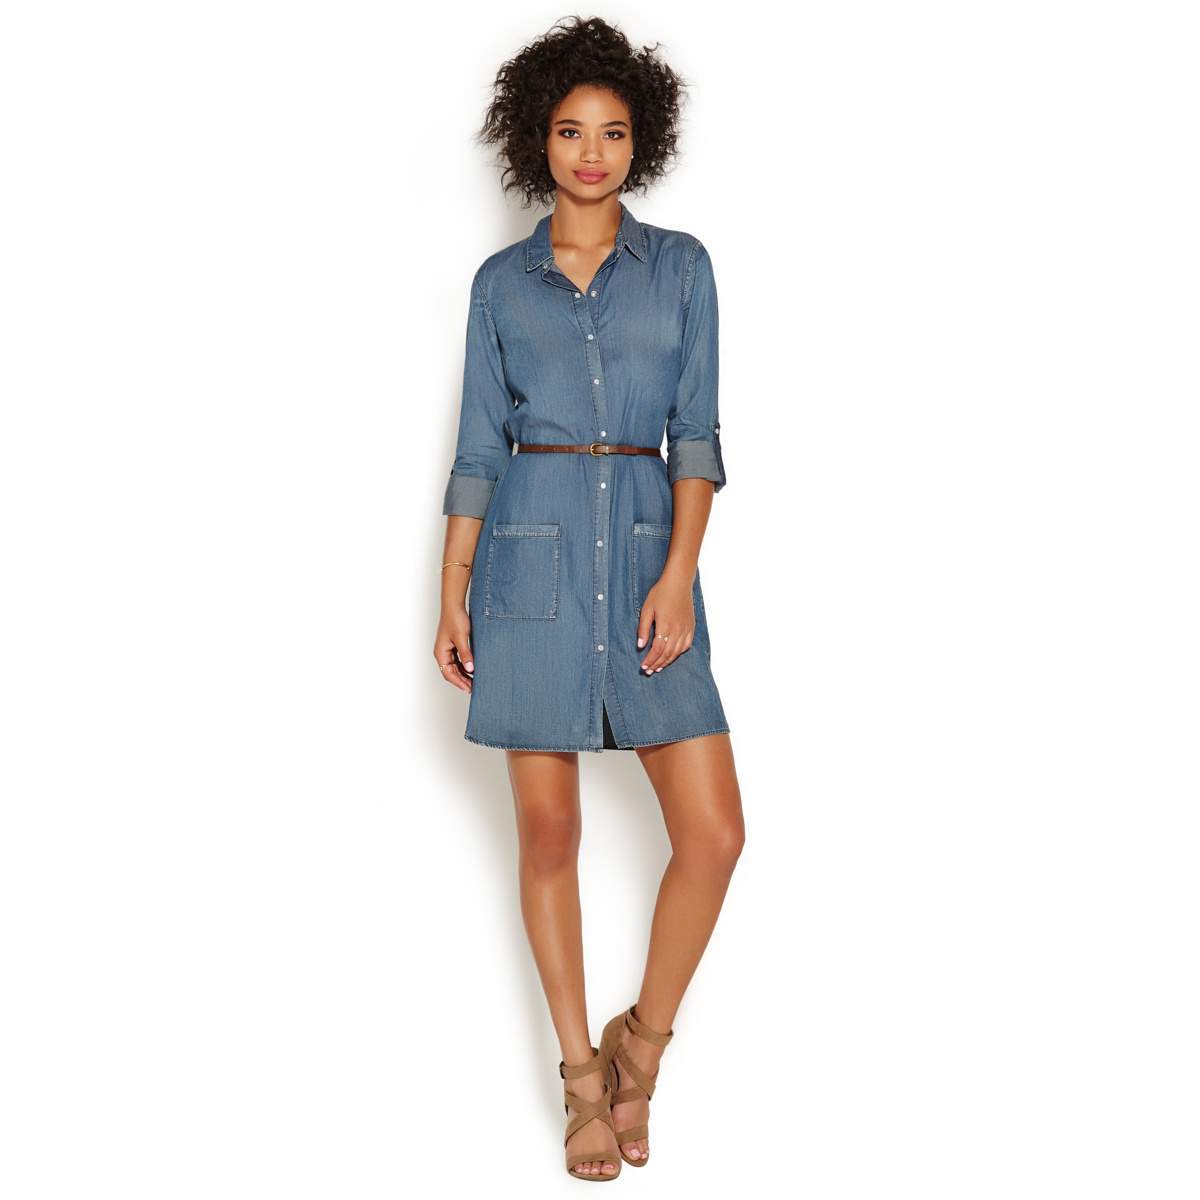 Pocket chambray dress shoedazzle for Chambray dress